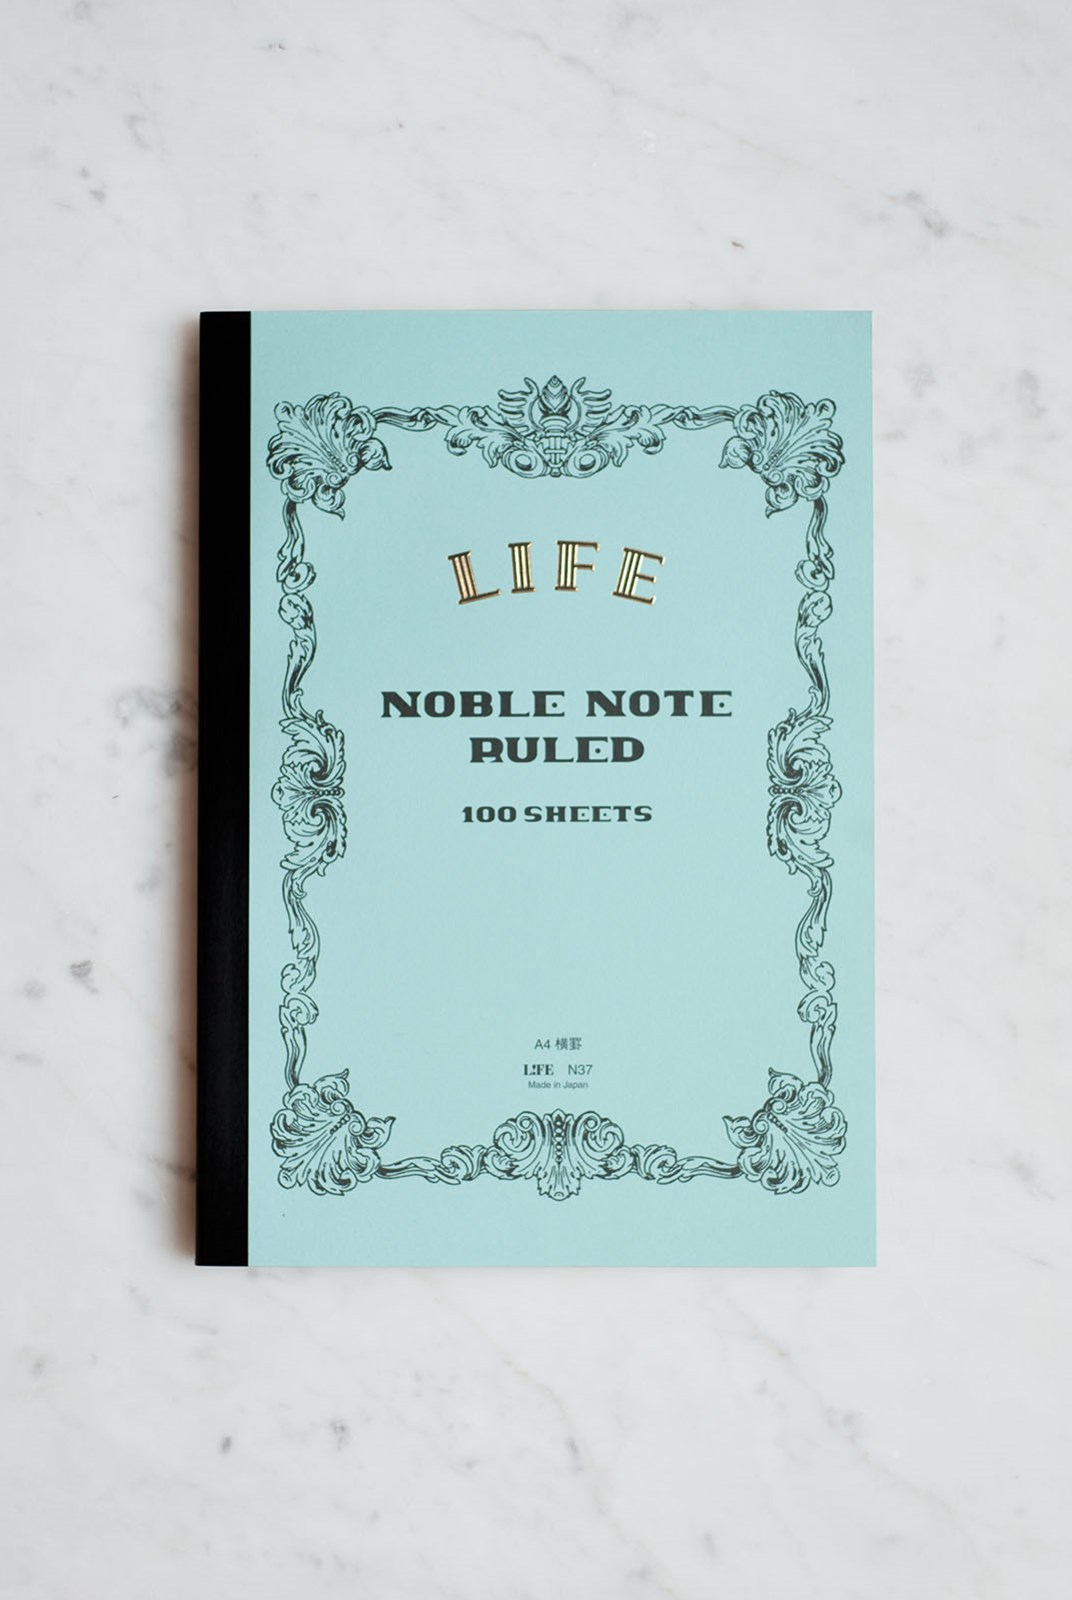 Life Stationery - Japanese Paper 'Noble Note' Notebook - Ruled - A4 - Light Blue